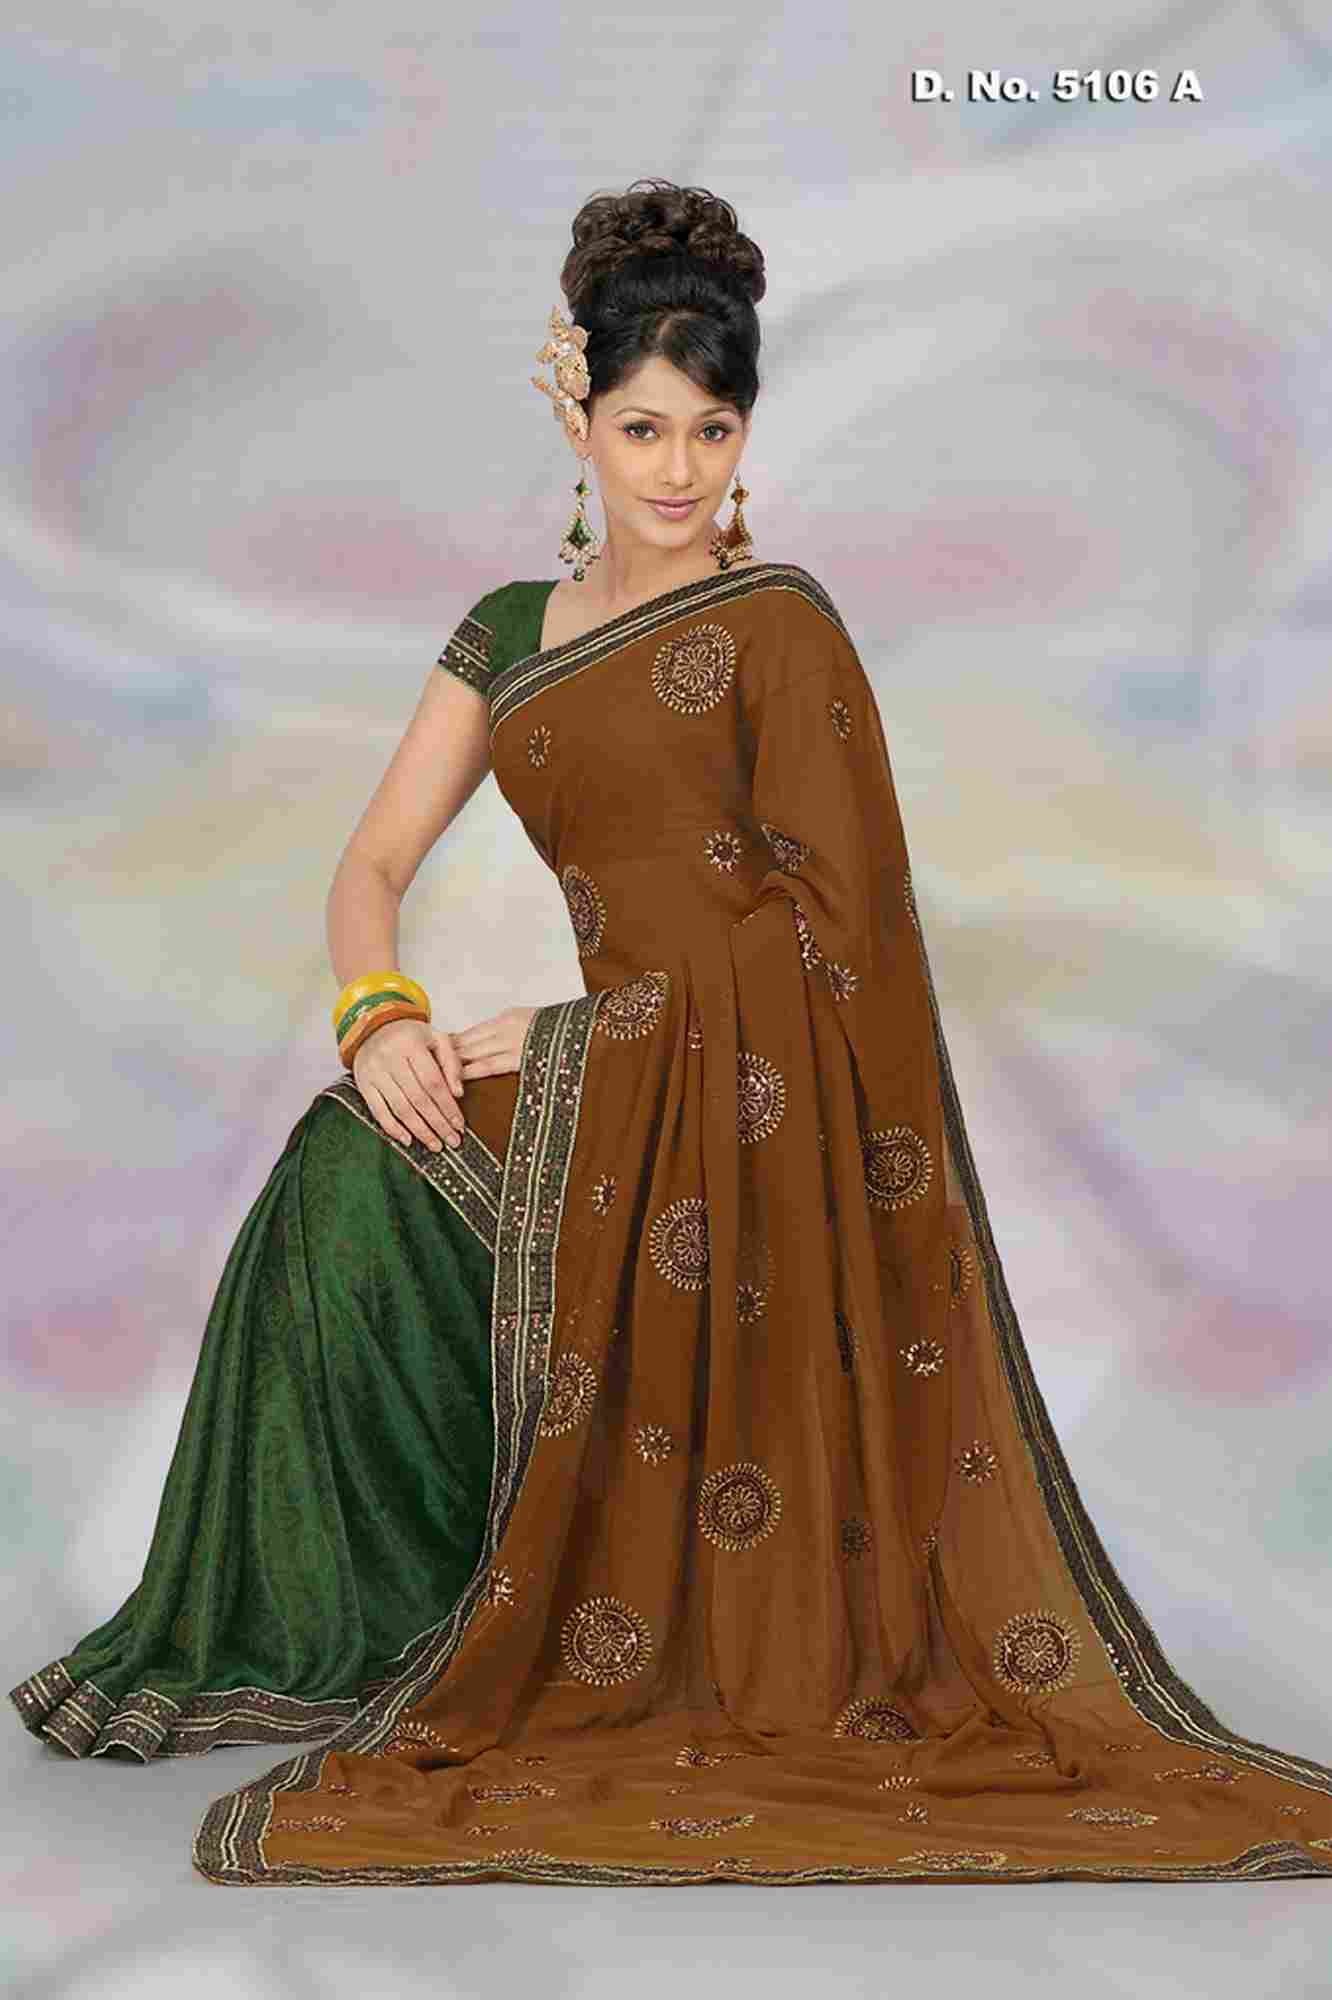 Indian Selections Aswathi Party Wear Georgette Sari  Saree at Sears.com